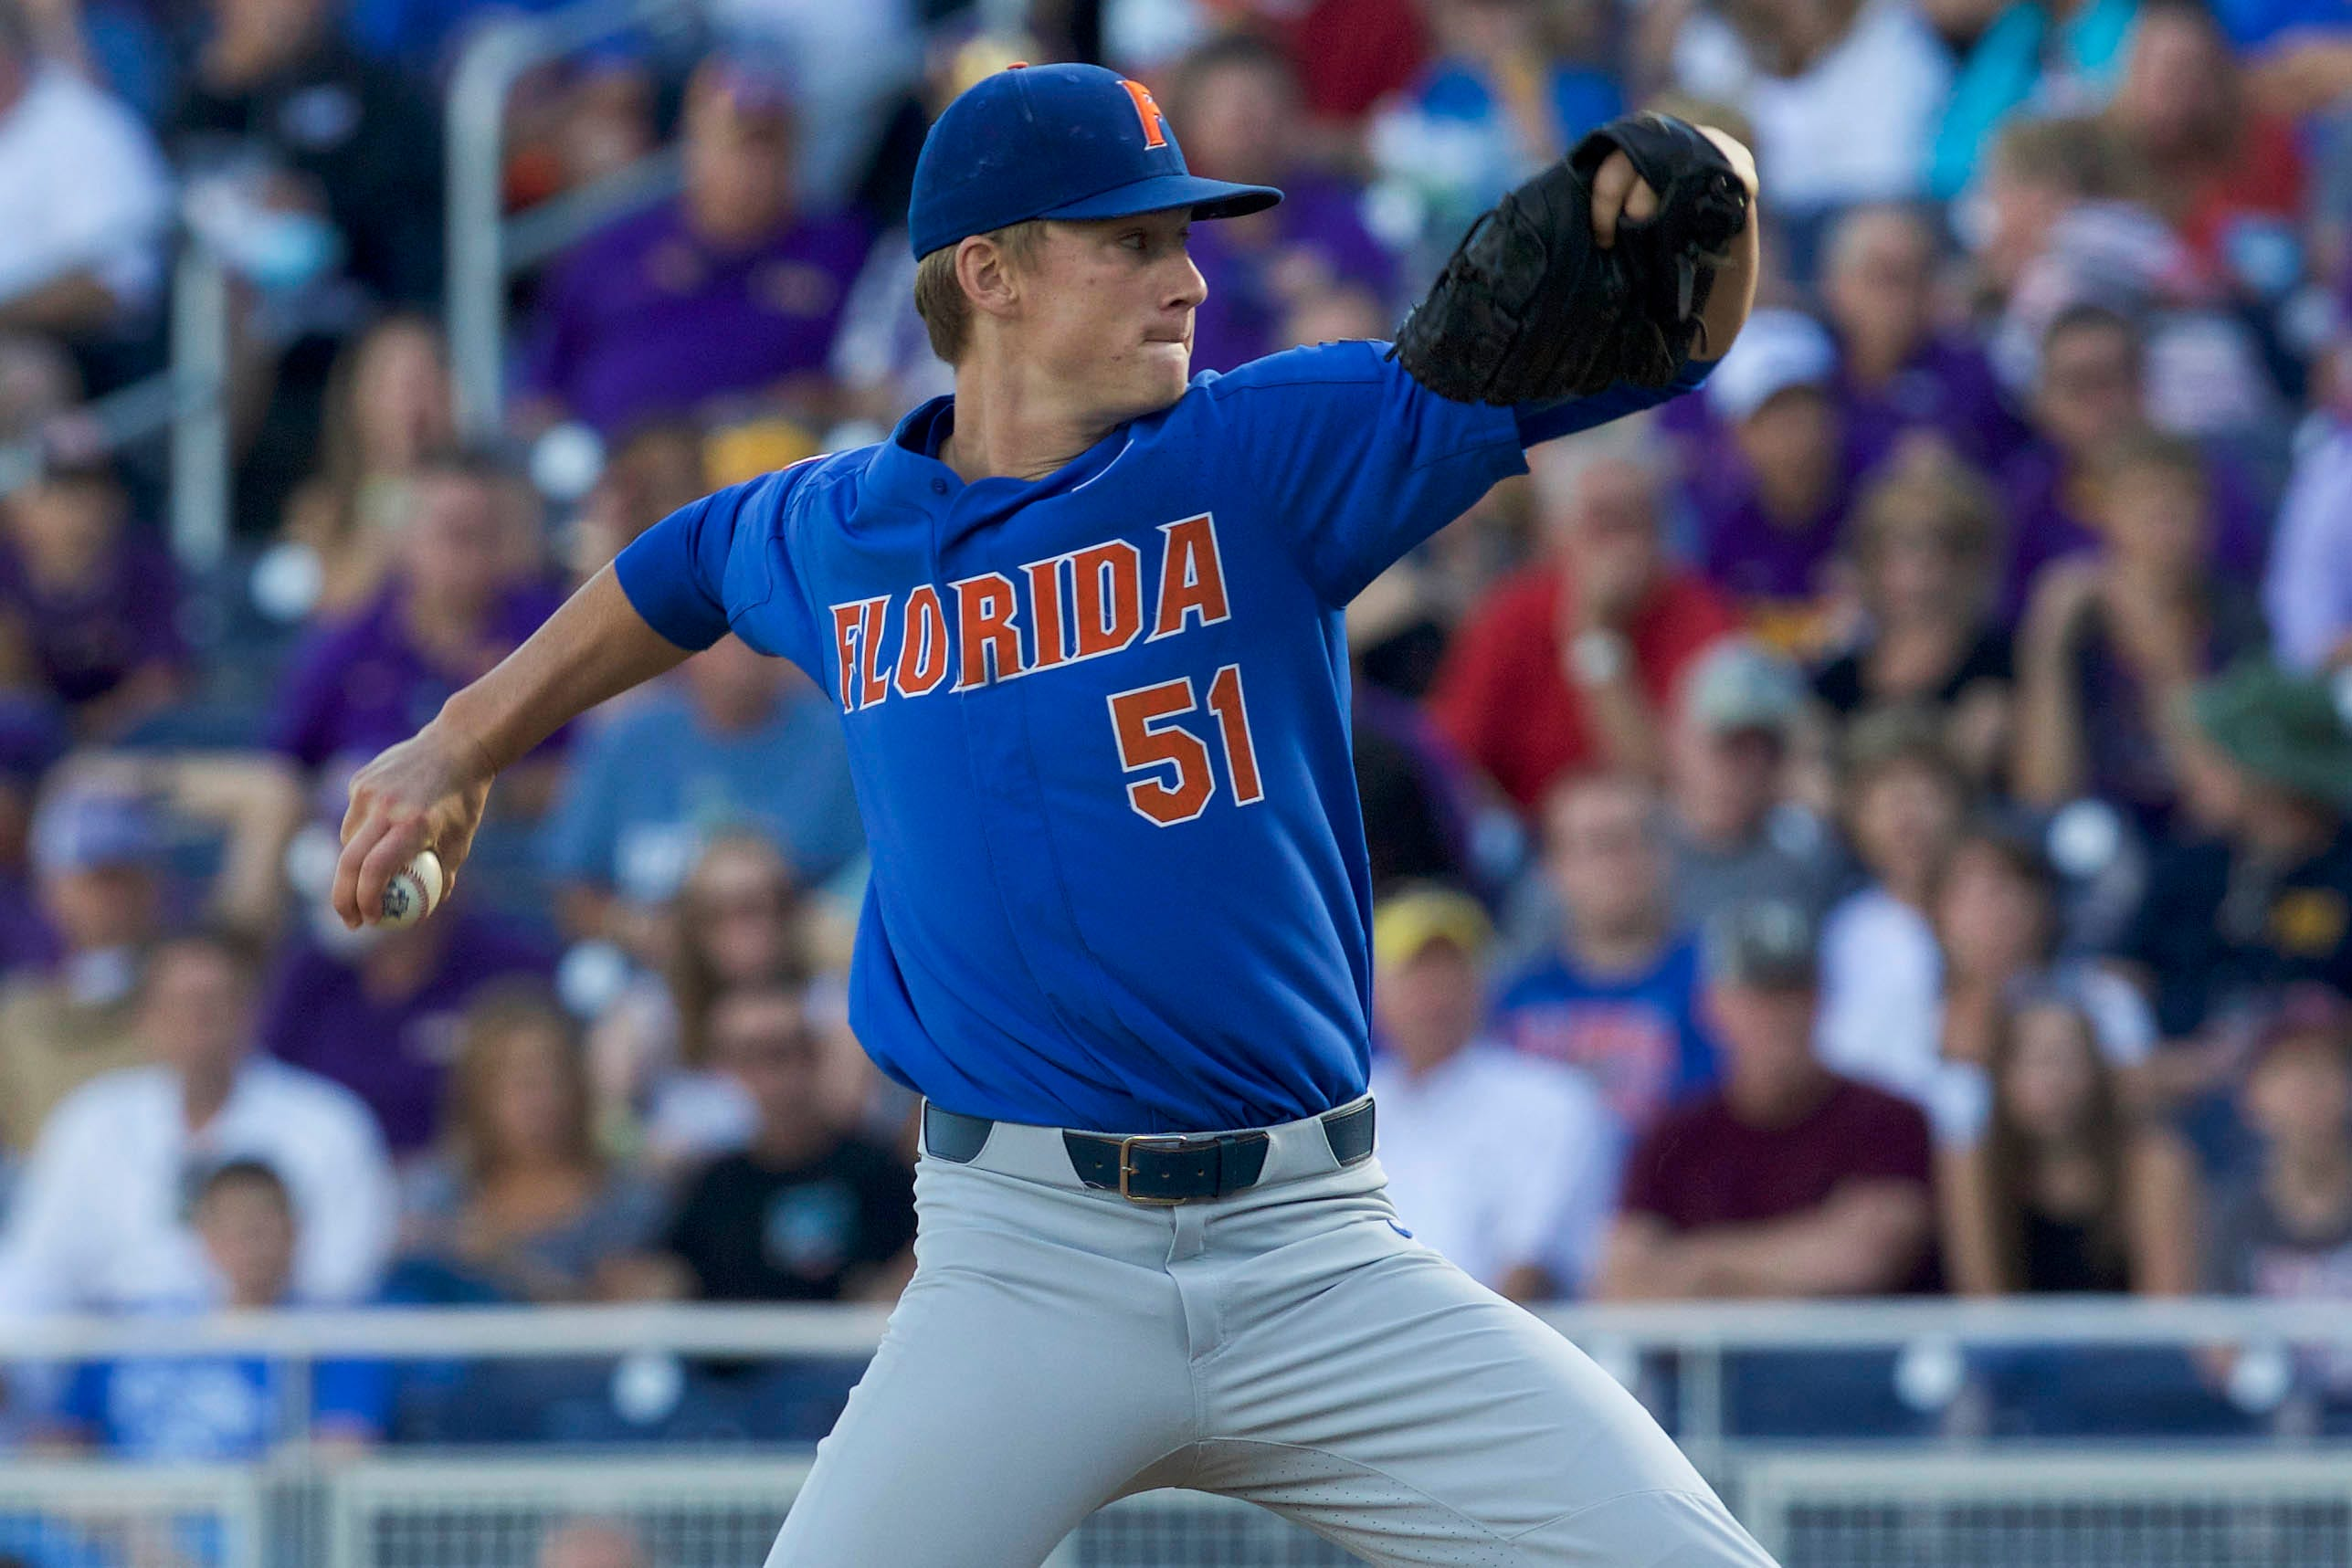 Jun 26, 2017; Omaha, NE, USA; Florida Gators pitcher Brady Singer (51) throws against the LSU Tigers in the first inning in game one of the championship series of the 2017 College World Series at TD Ameritrade Park Omaha. Mandatory Credit: Bruce Thorson-USA TODAY Sports ORG XMIT: USATSI-360331 ORIG FILE ID:  20170626_sal_st5_118.JPG